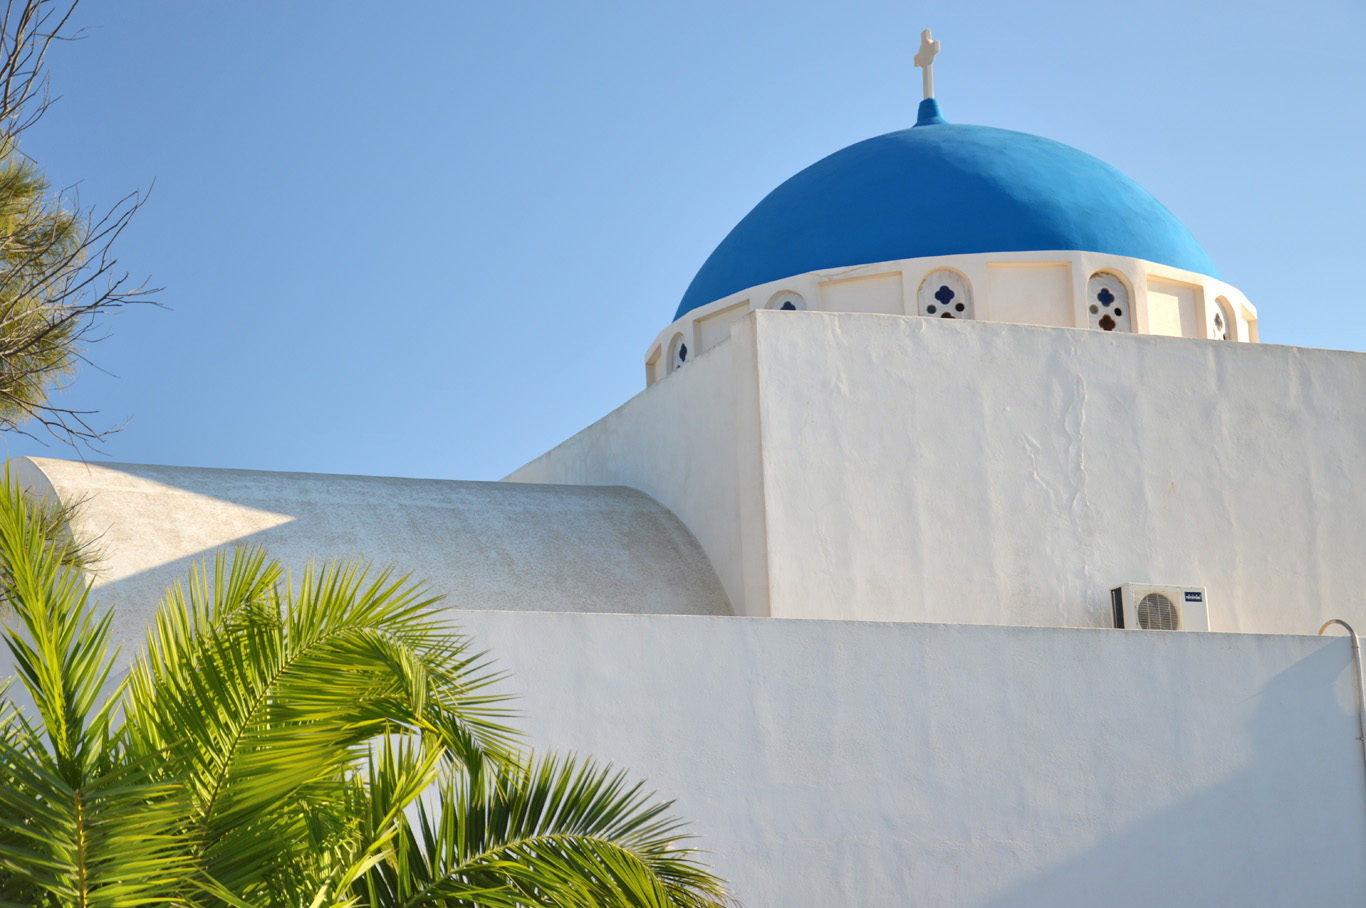 Another whitewashed church